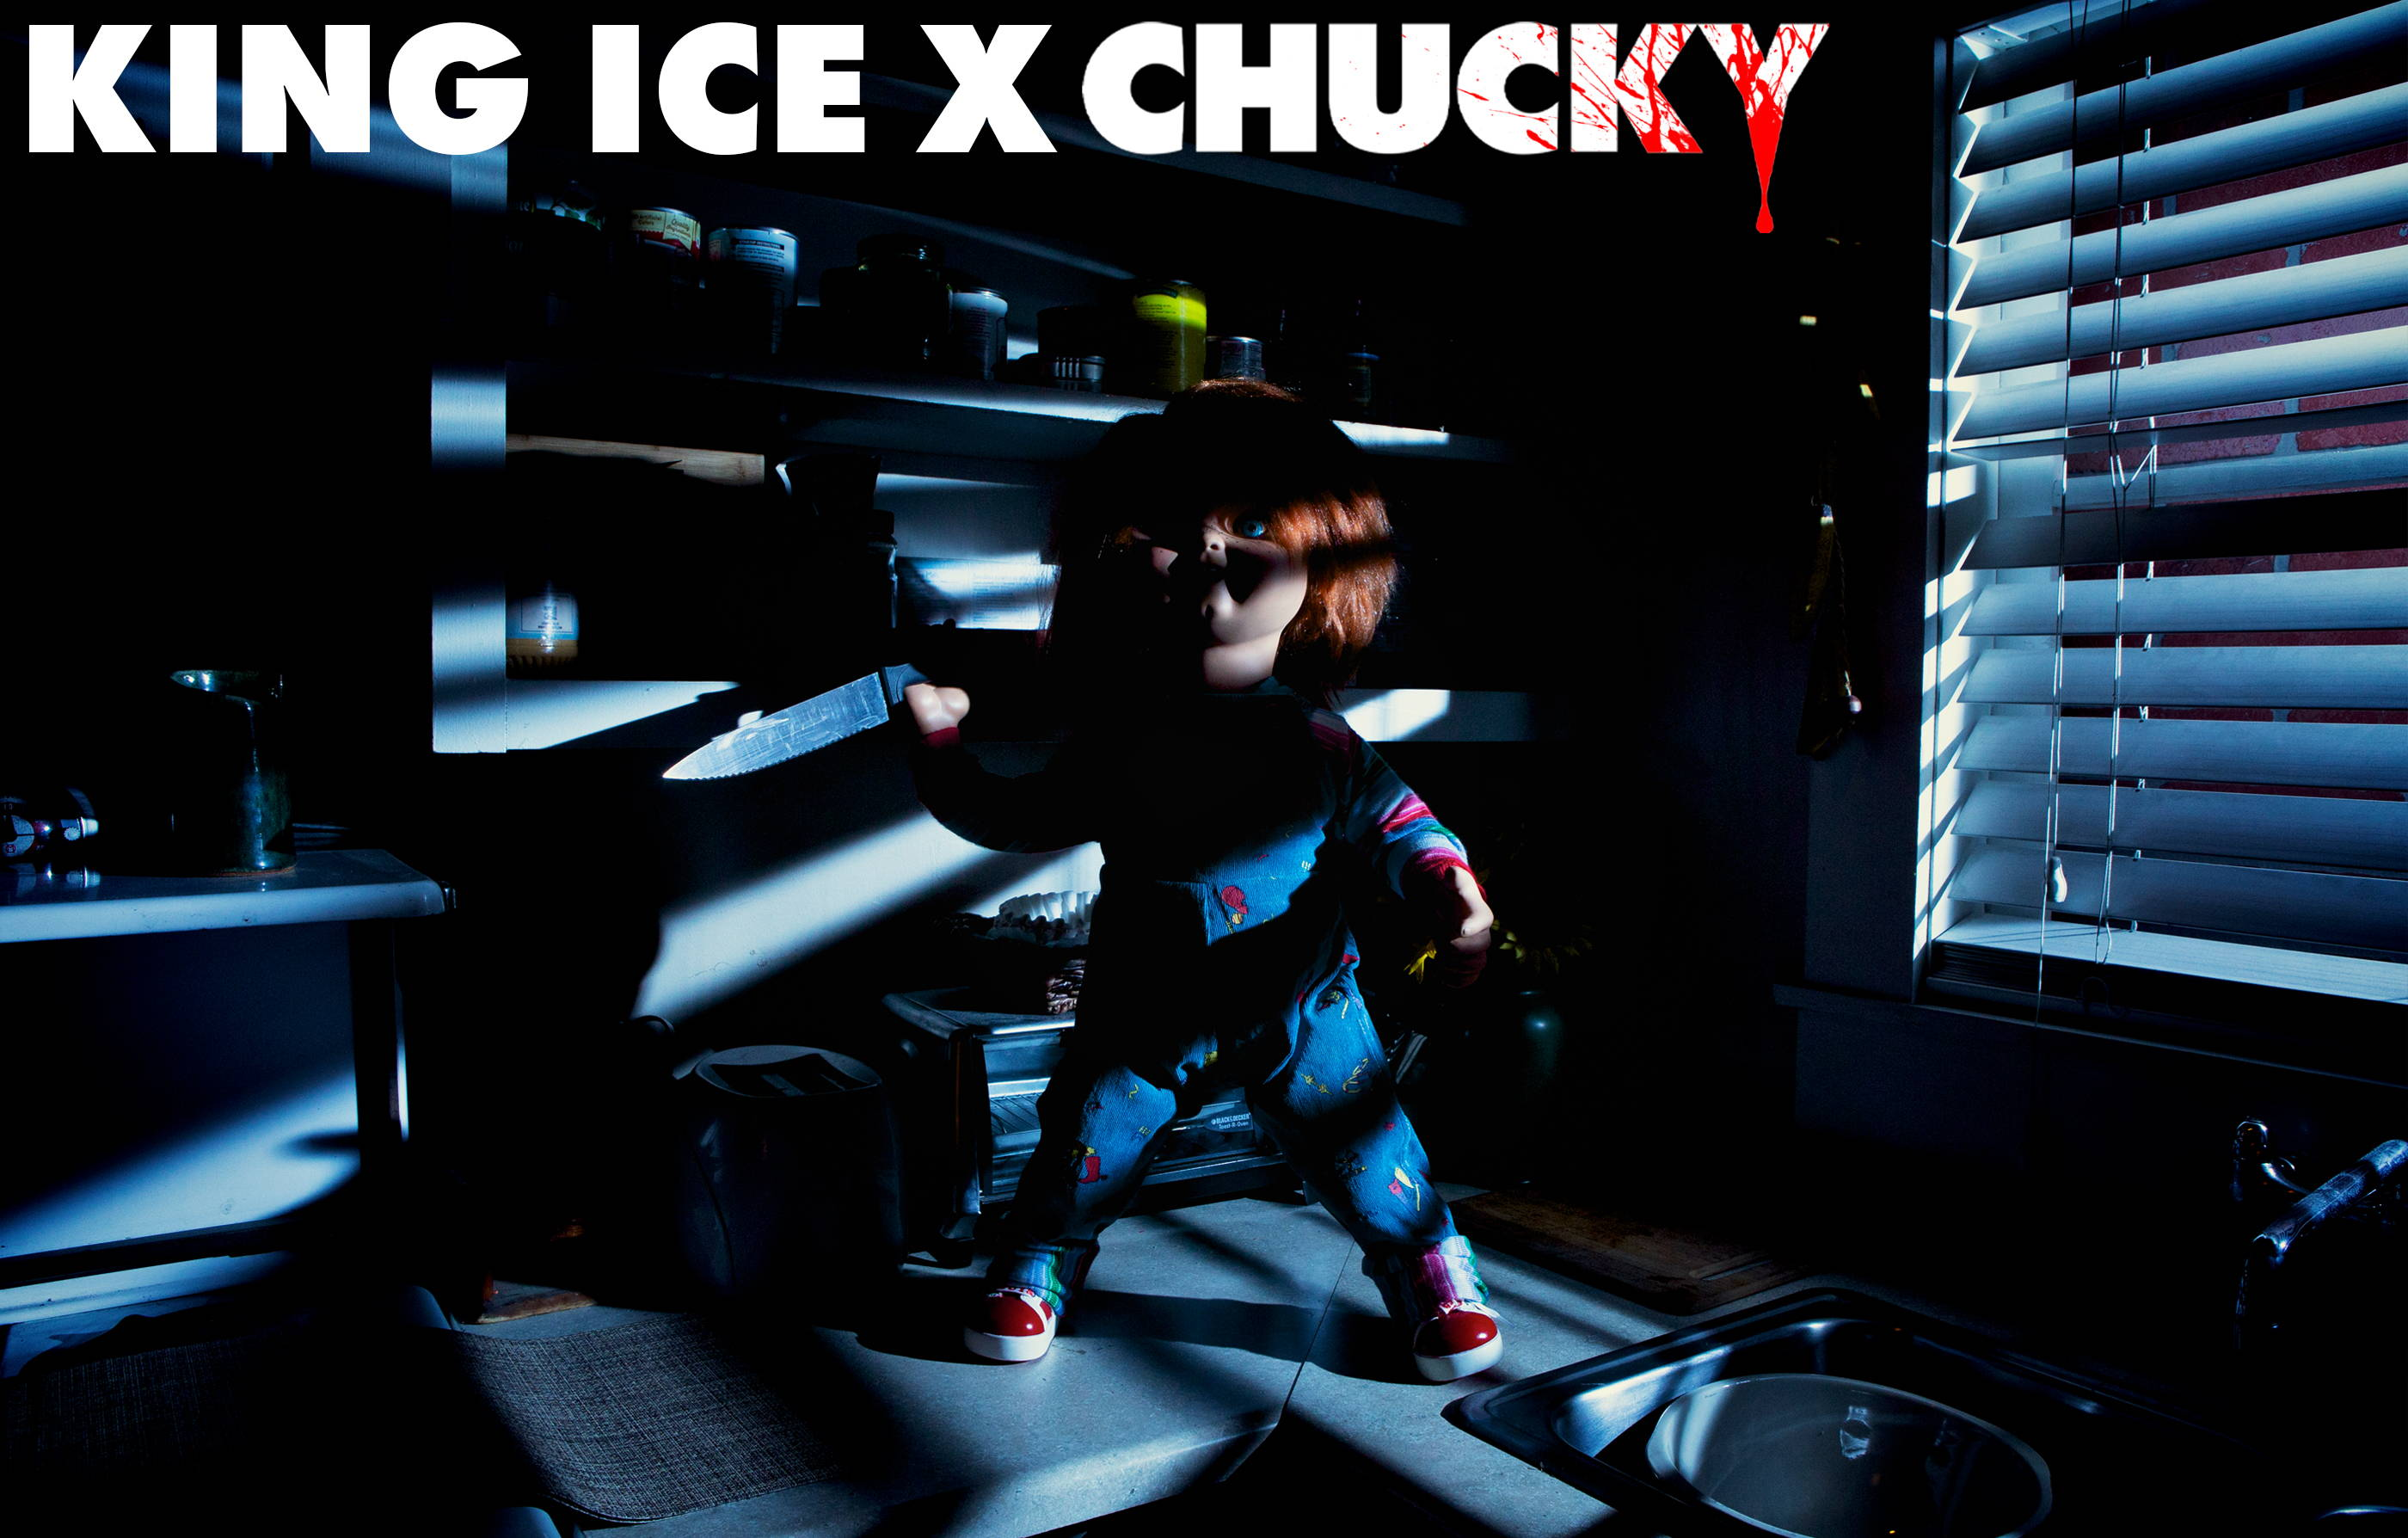 King Ice X Chucky official collaboration campaign lookbook photos